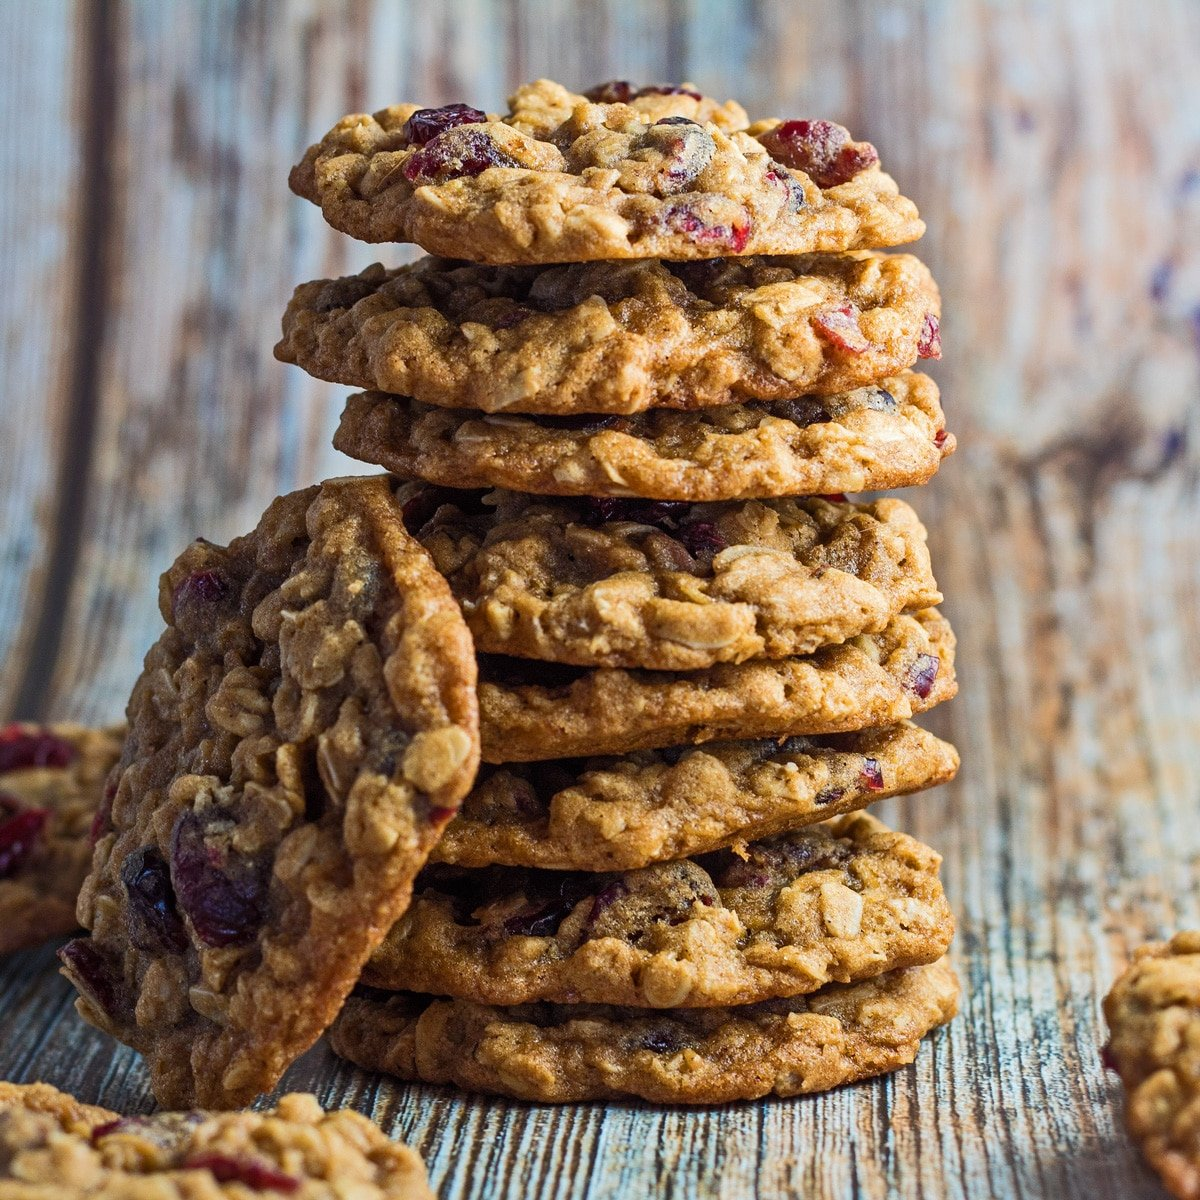 Oatmeal craisin cookies stacked with wooden grain background.